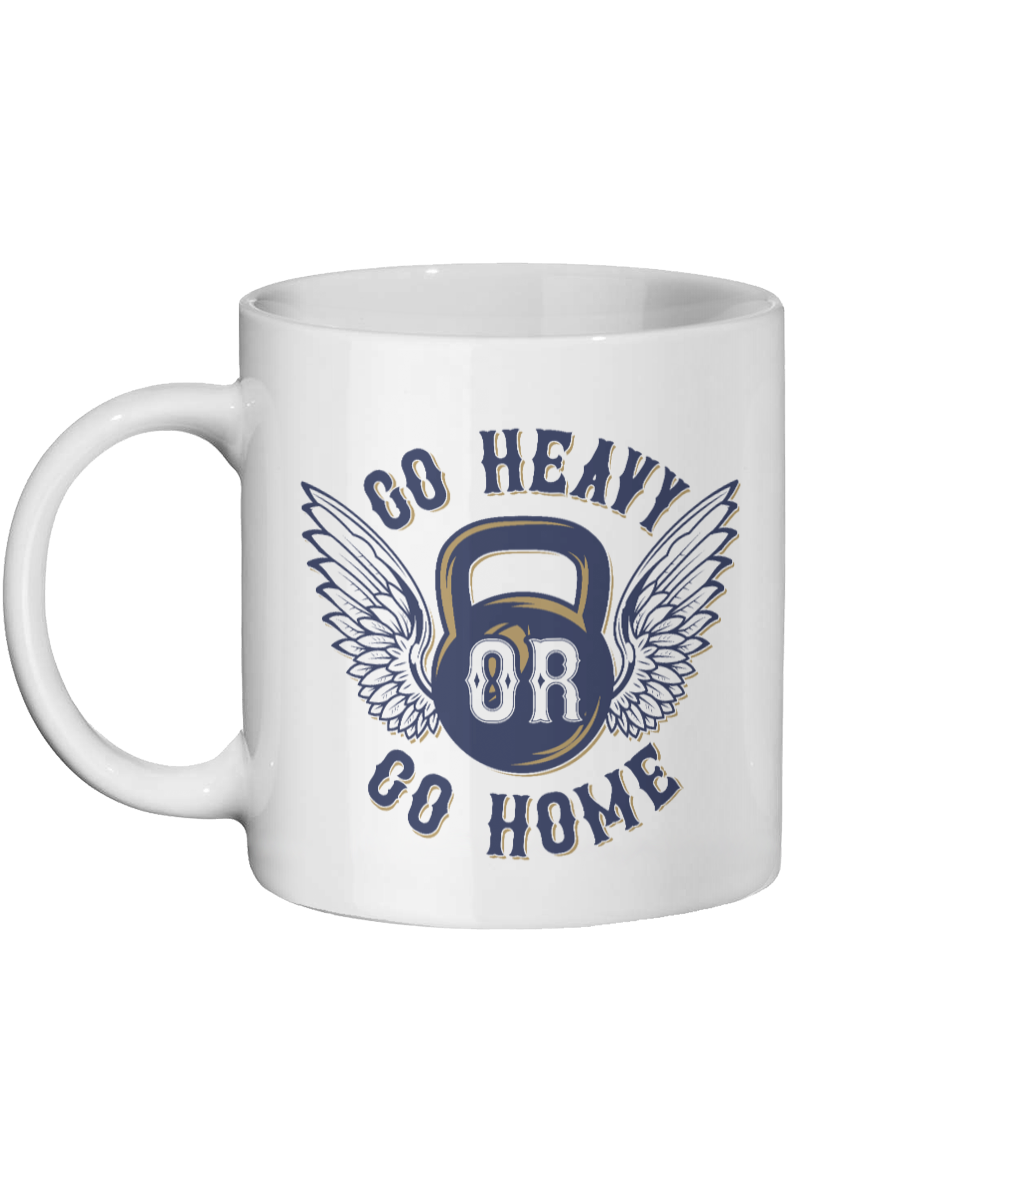 [personalised_mug]Go Heavy Or Go Home Gym-Personalised Mug - status mugs